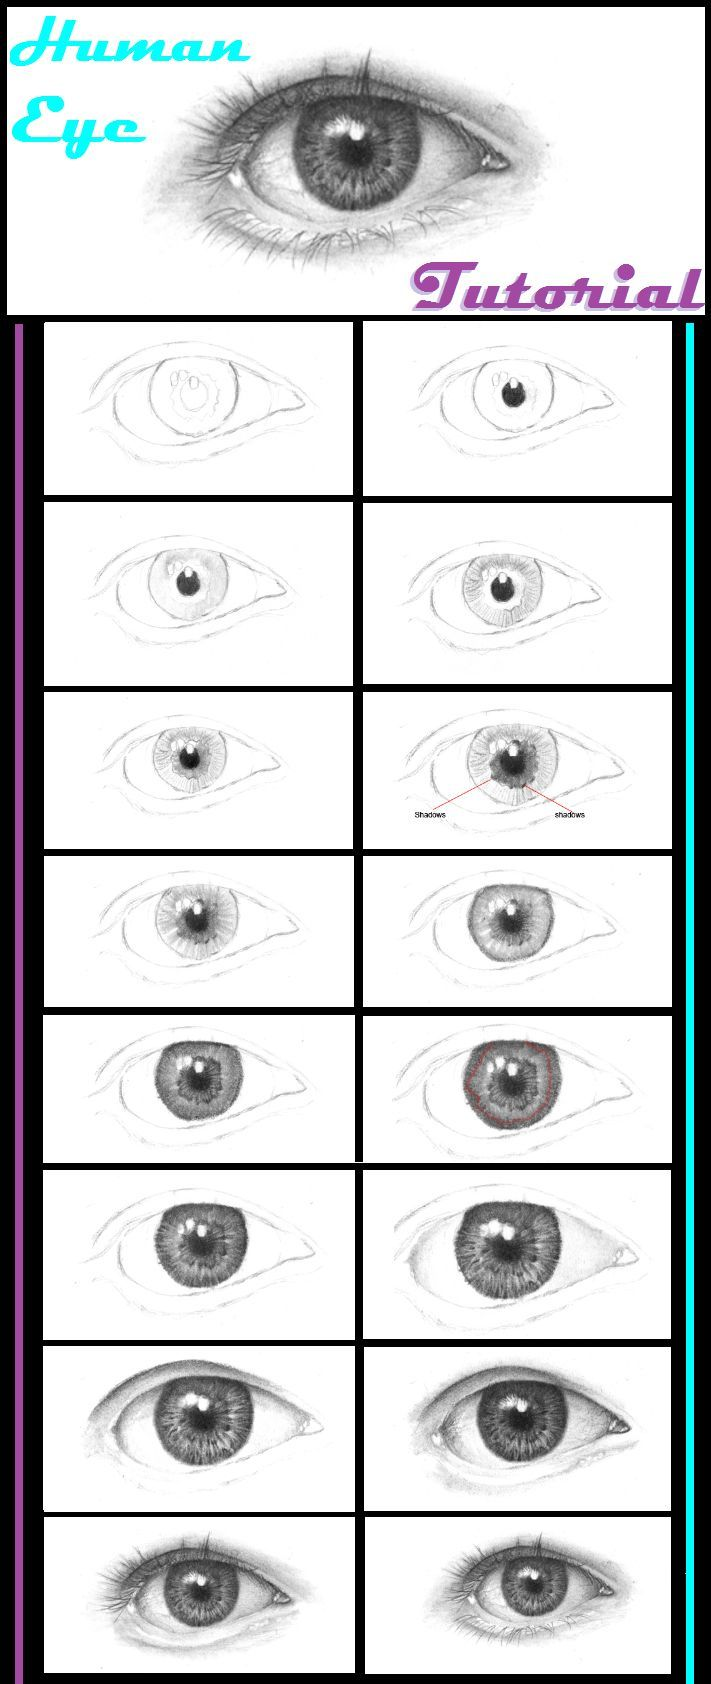 How to draw human eyes step by step.